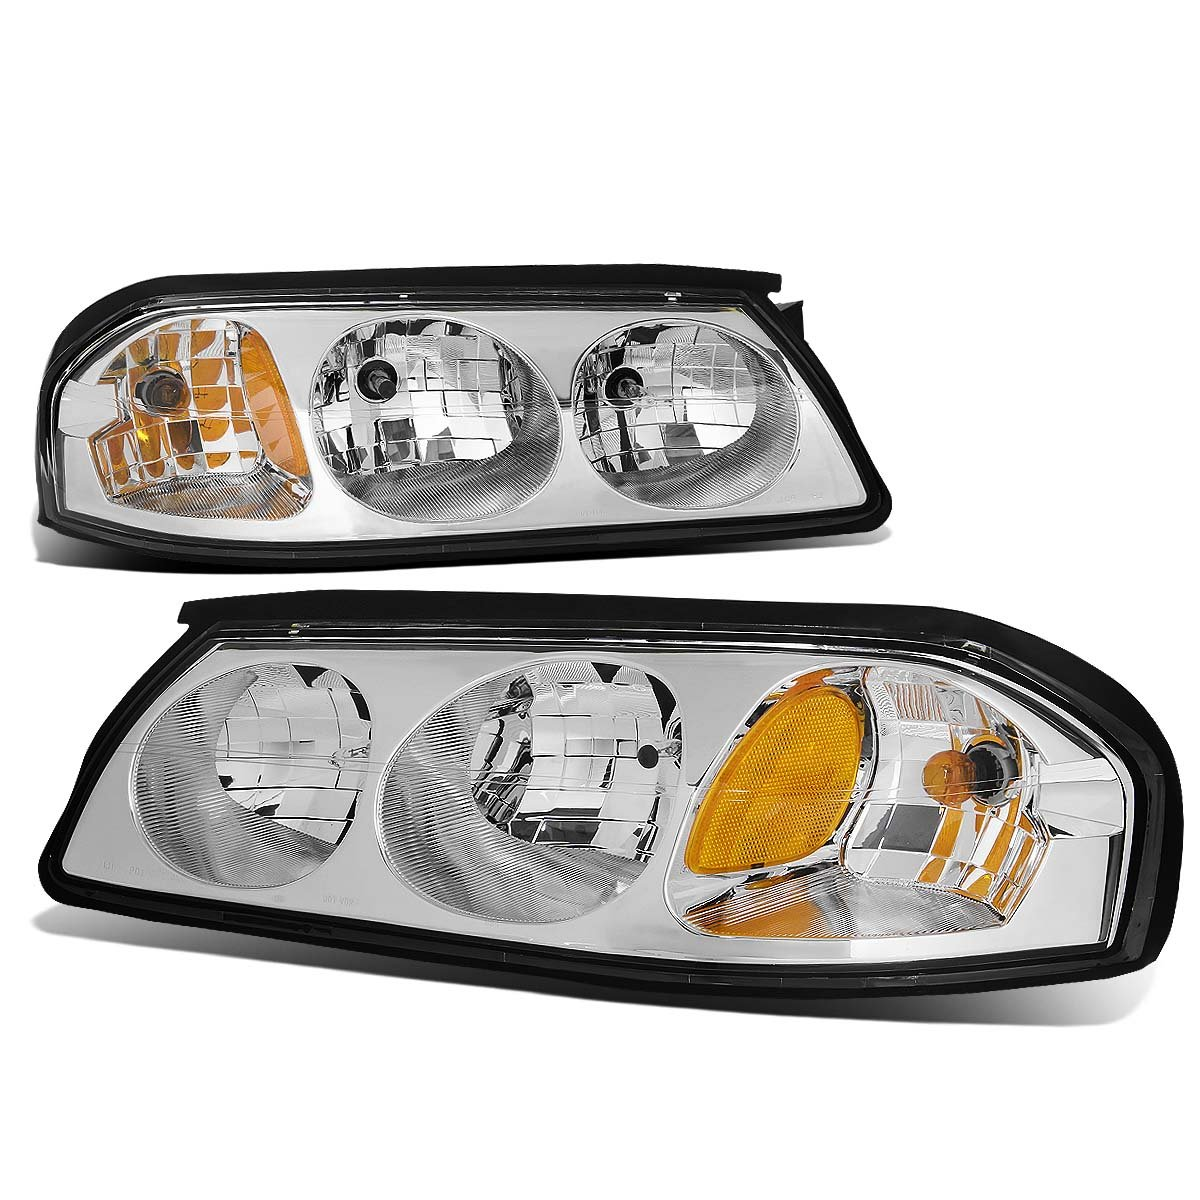 DNA MOTORING HL-OH-FM99-SM-AM Headlight Assembly Driver and Passenger Side